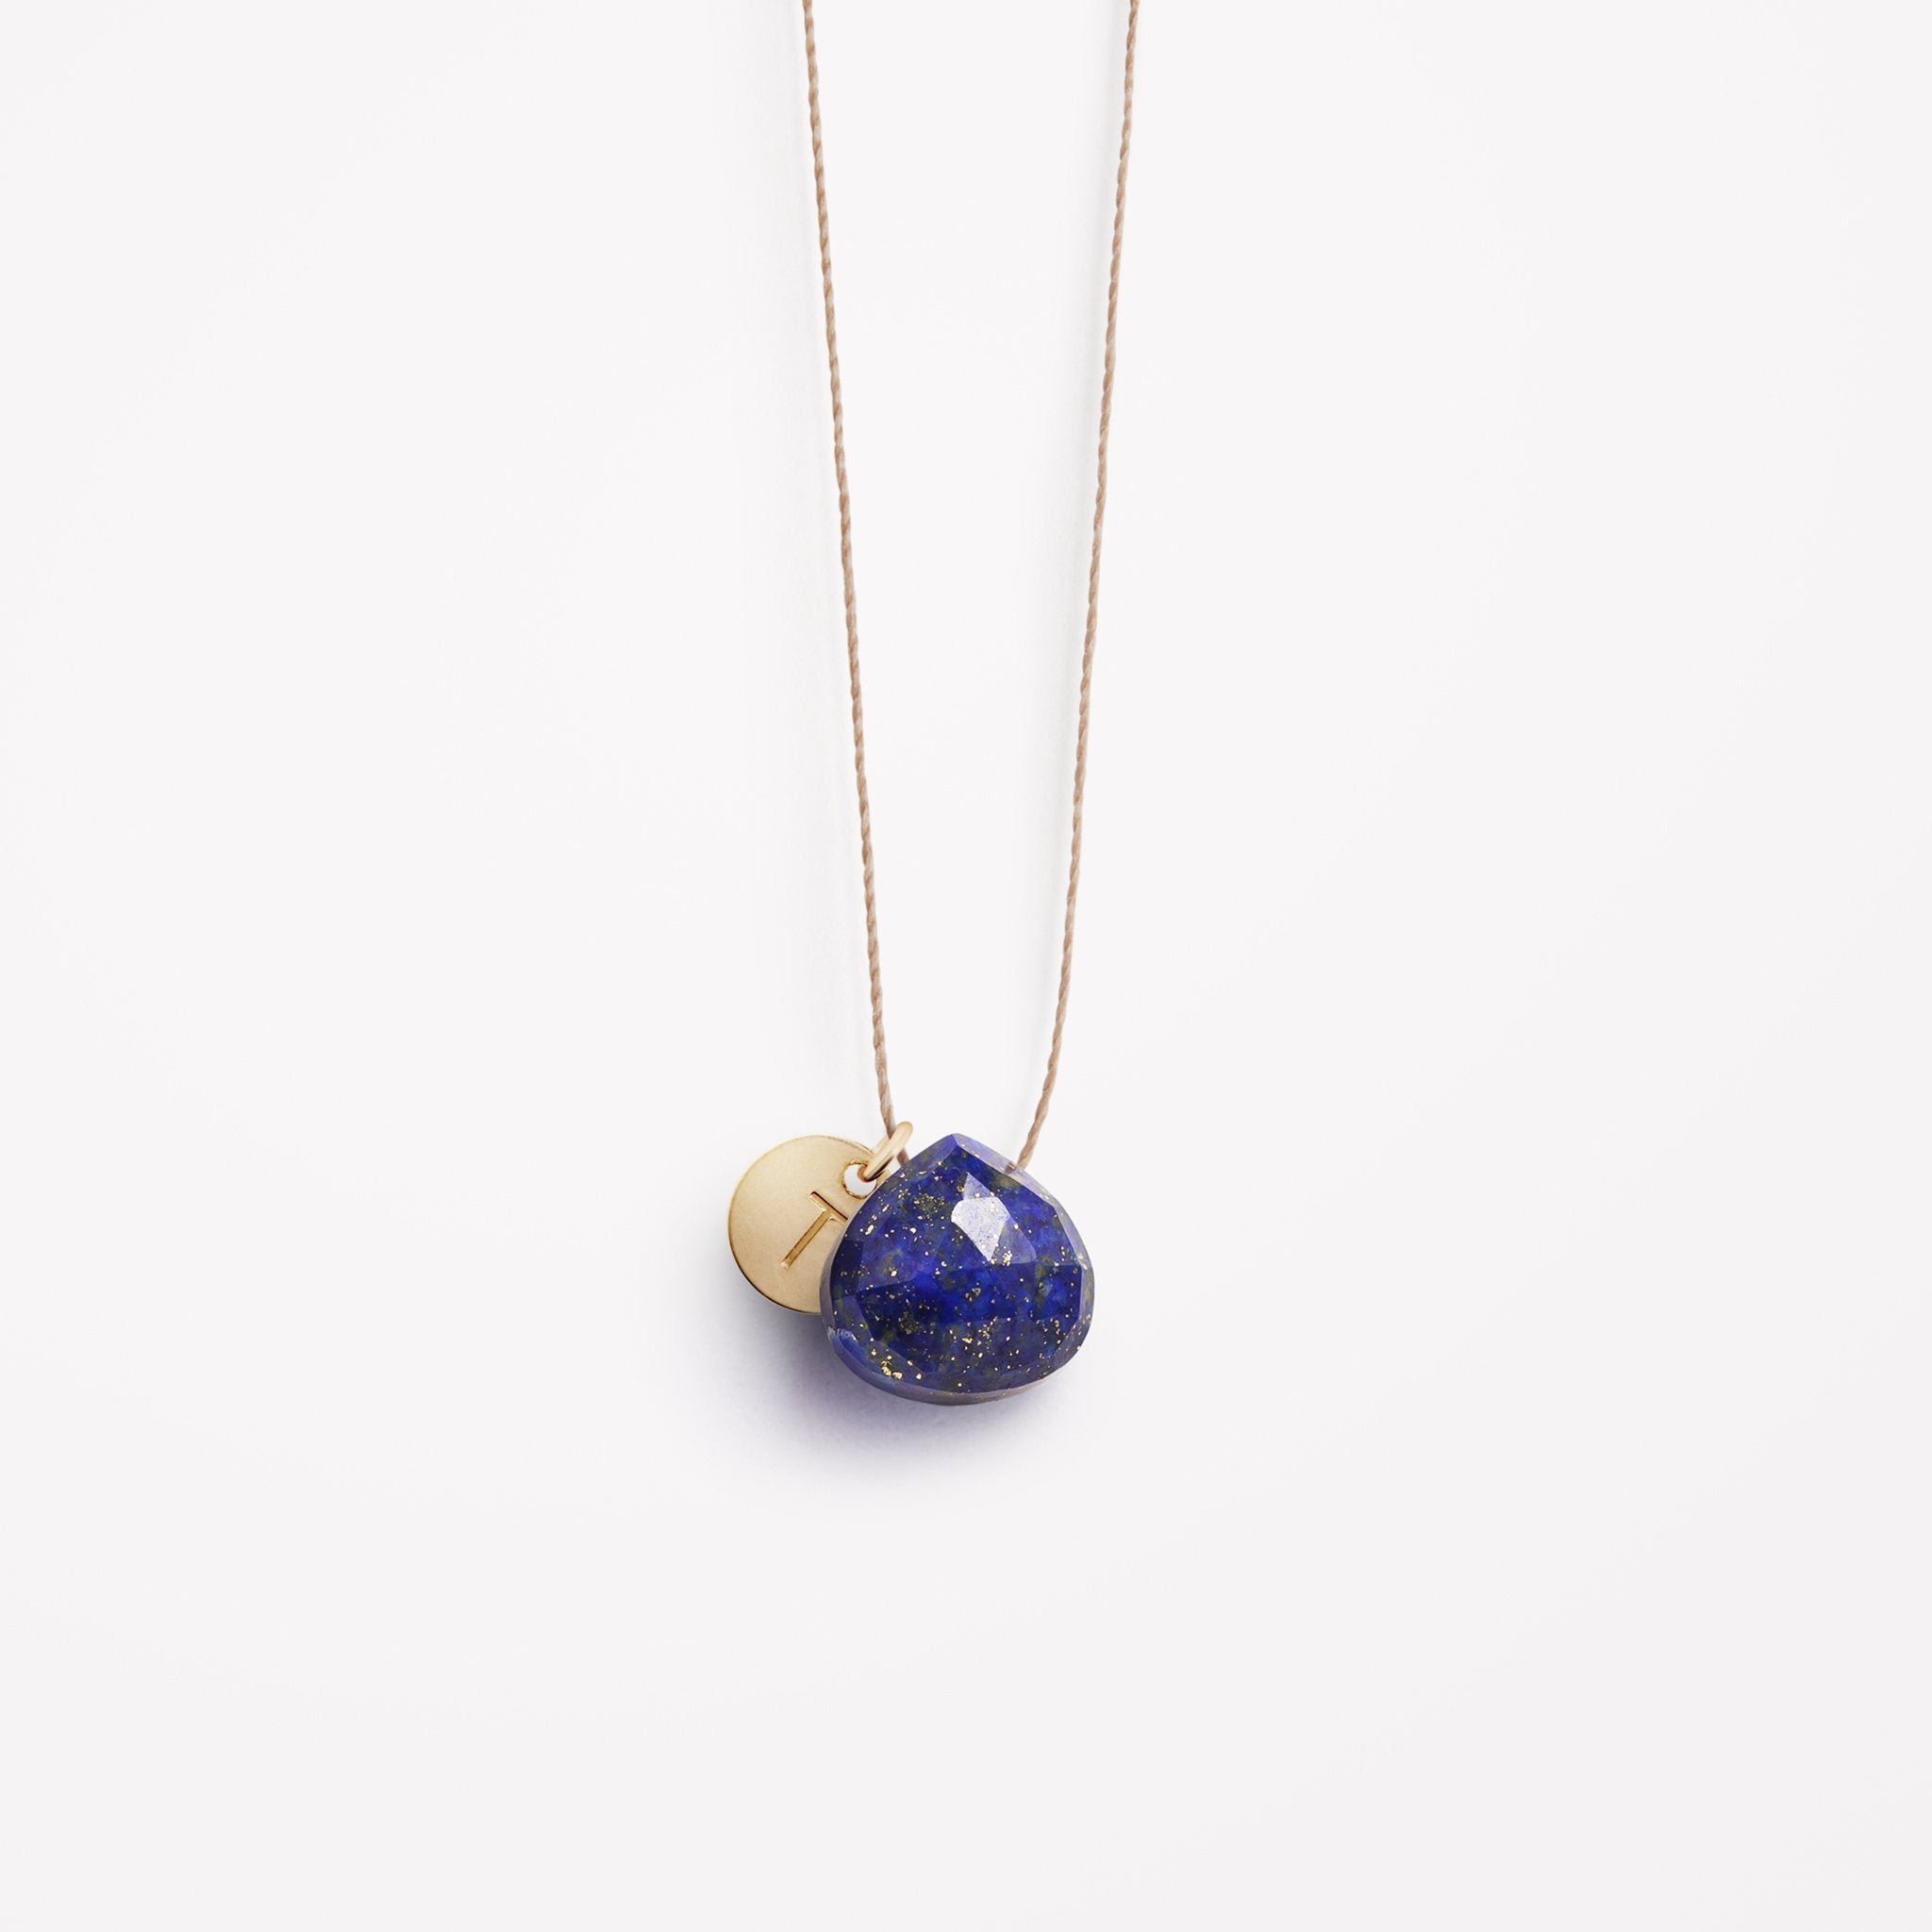 Wanderlust Life Ethically Handmade jewellery made in the UK. Minimalist gold and fine cord jewellery. Personalised bestselling blue lapis lazuli gemstone fine cord necklace with gold personalised initial tag.